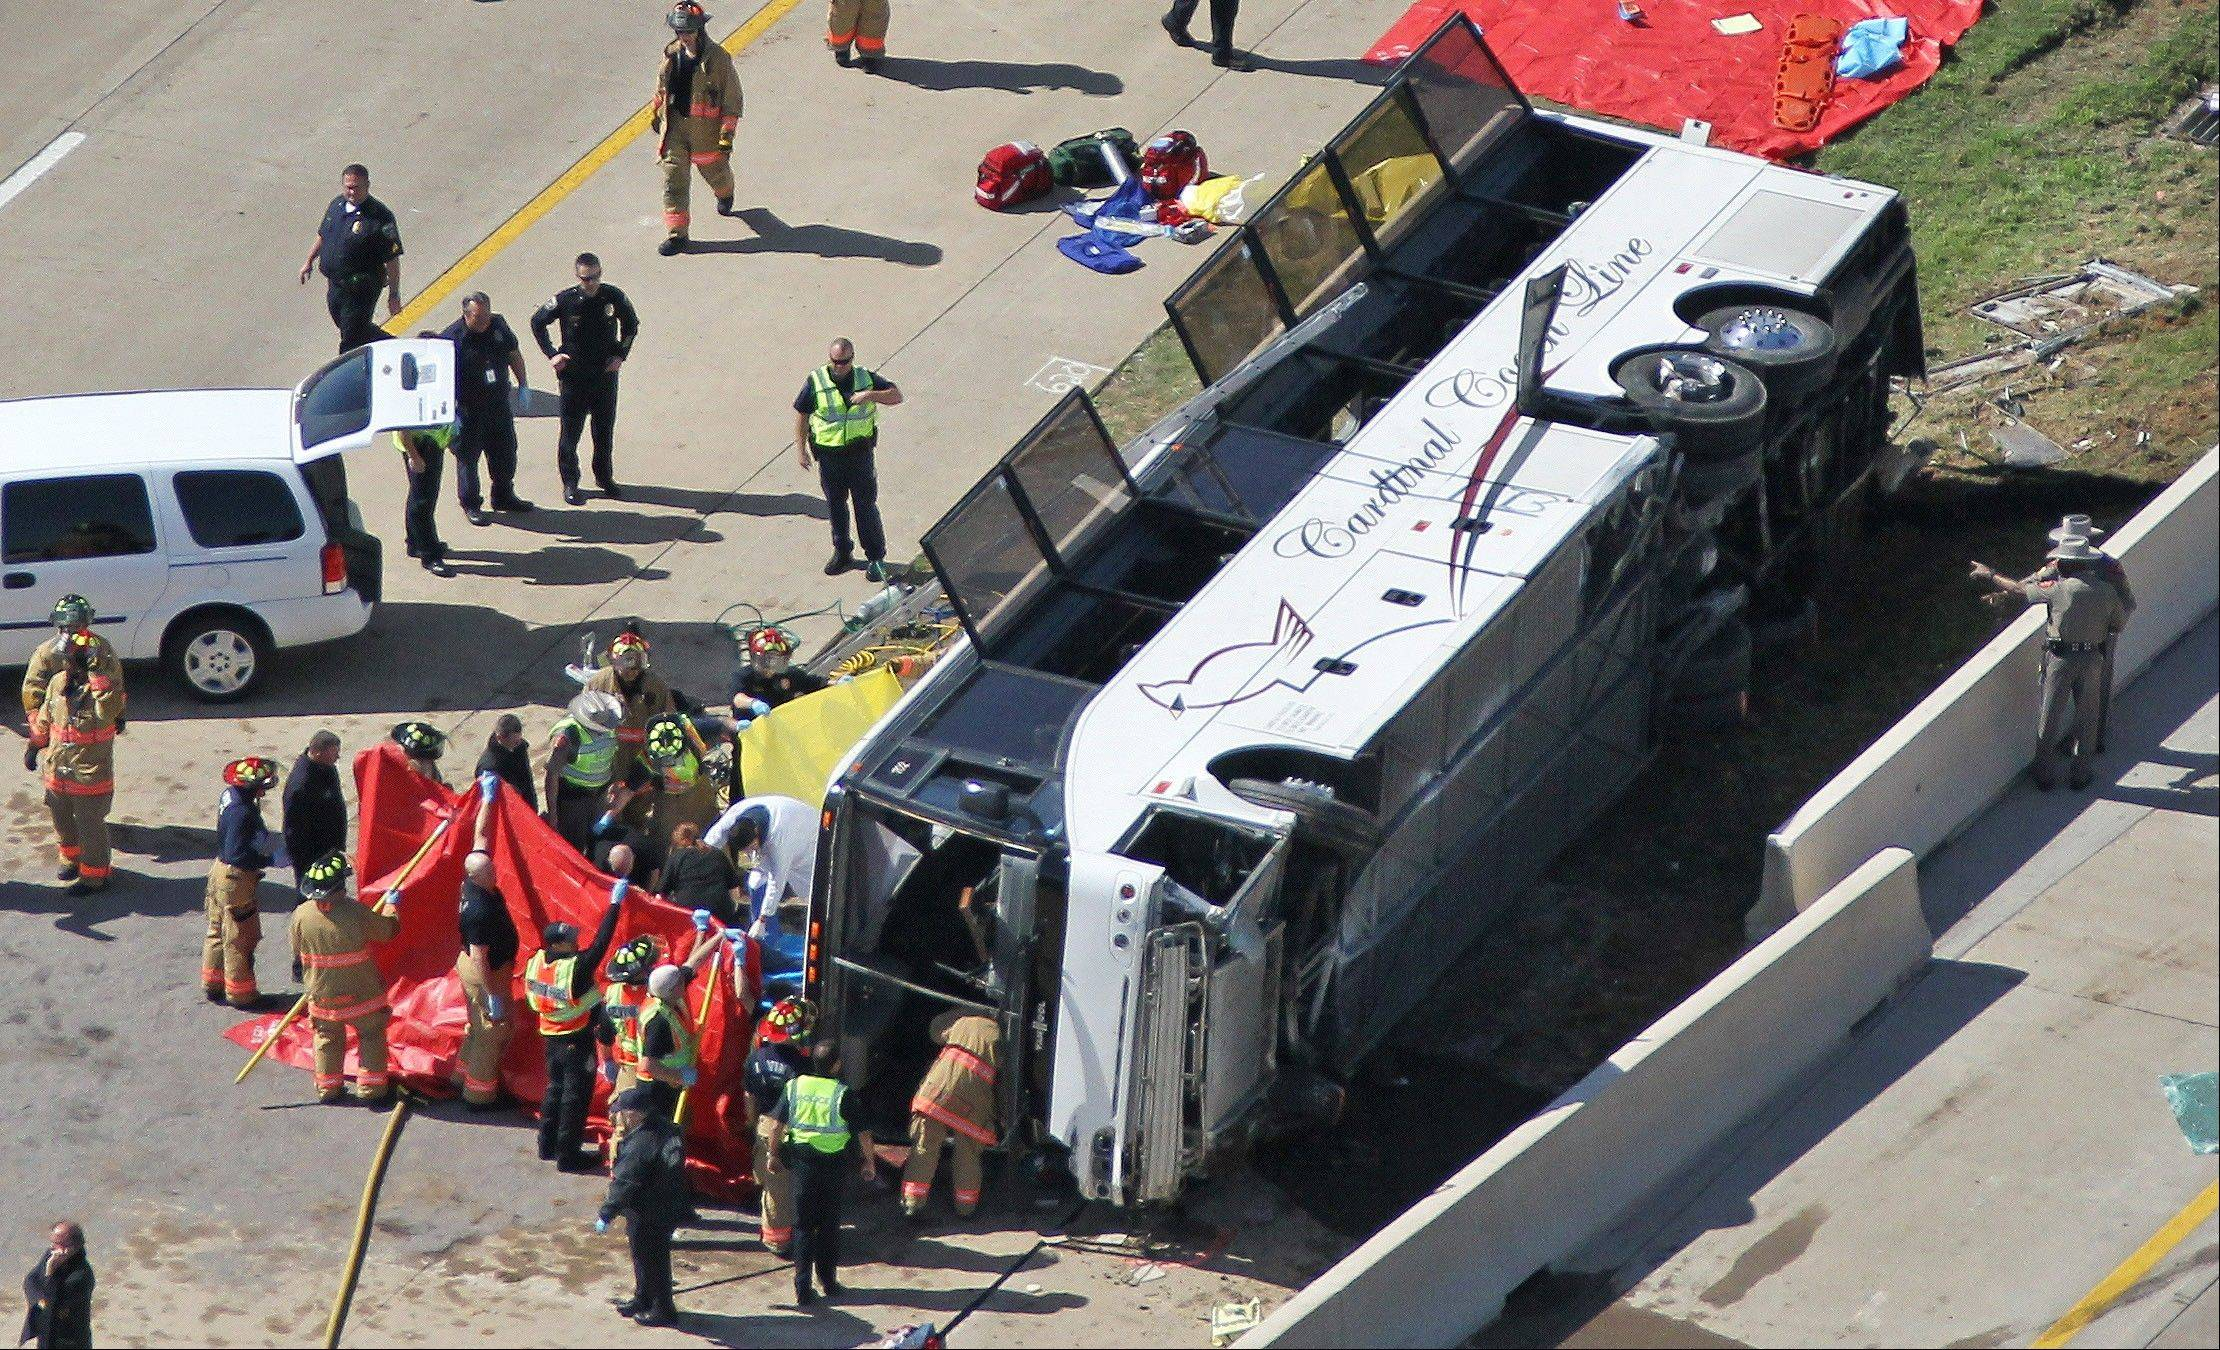 Rescue personnel work the scene of a Cardinal Coach Line charter bus accident in Irving, Texas, Thursday. Authorities said at least two people were dead and more than 40 others were hospitalized after the chartered bus overturned.